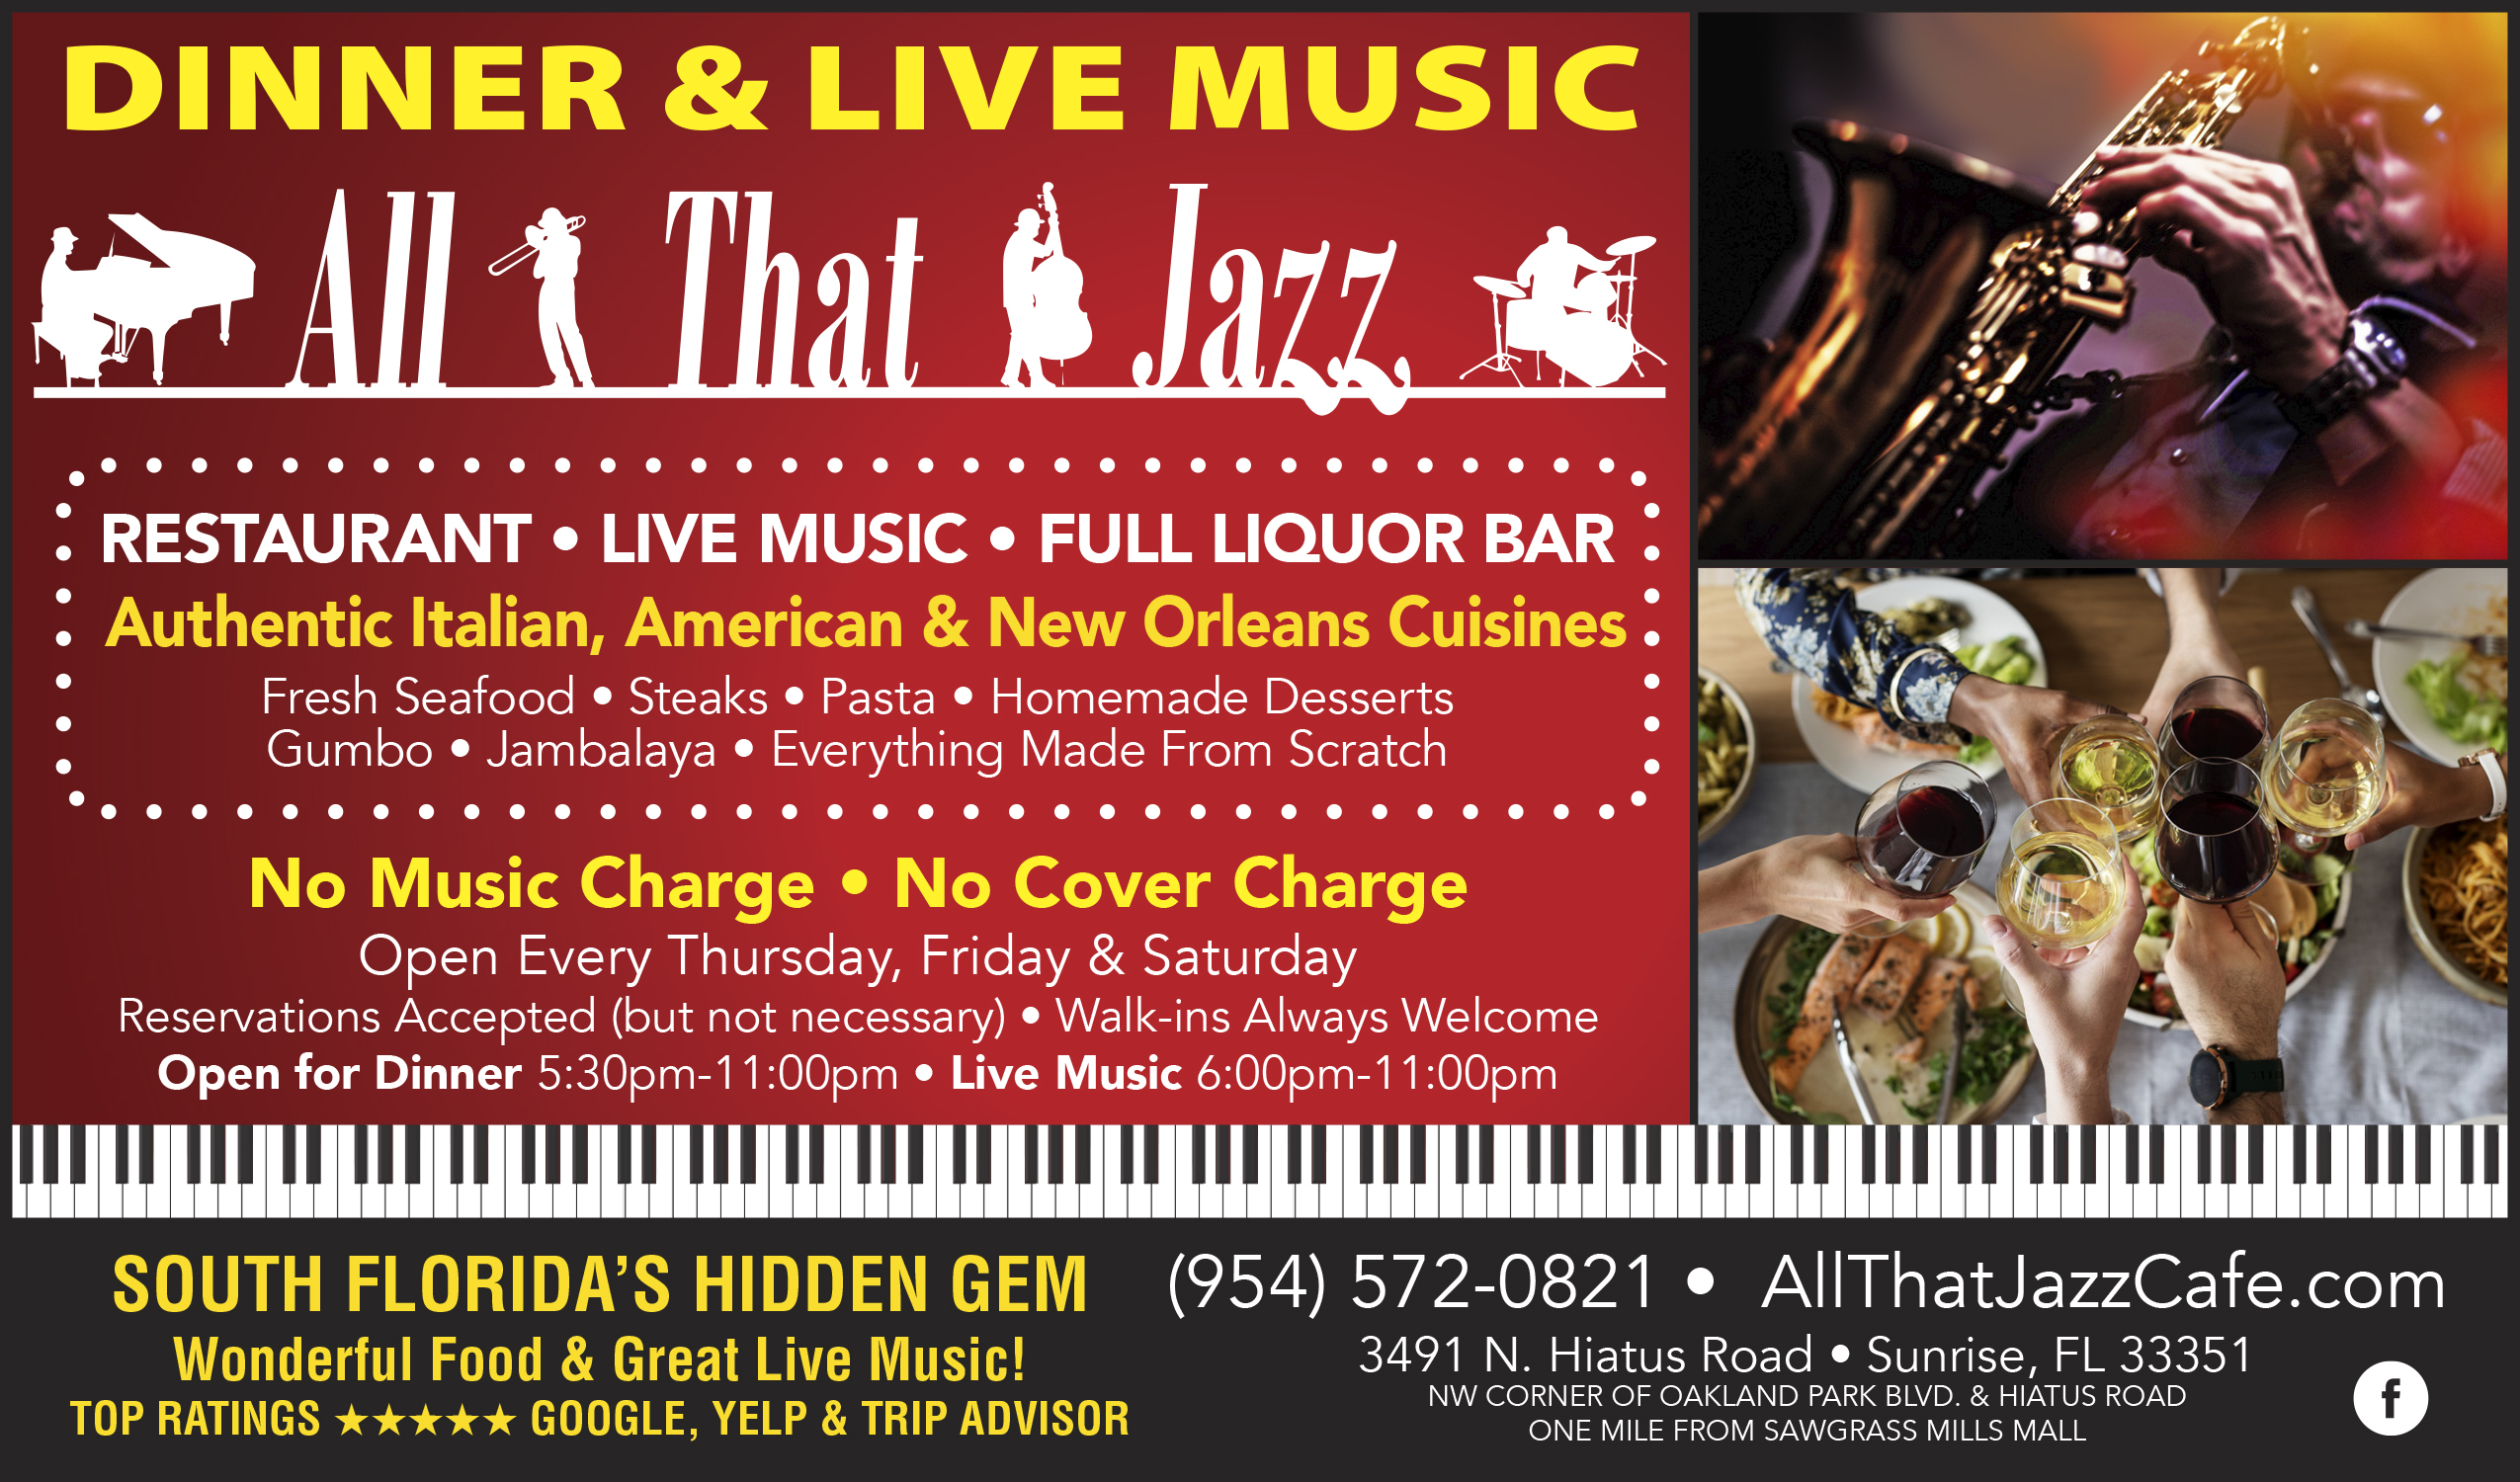 All That Jazz Cafe in Sunrise South Florida